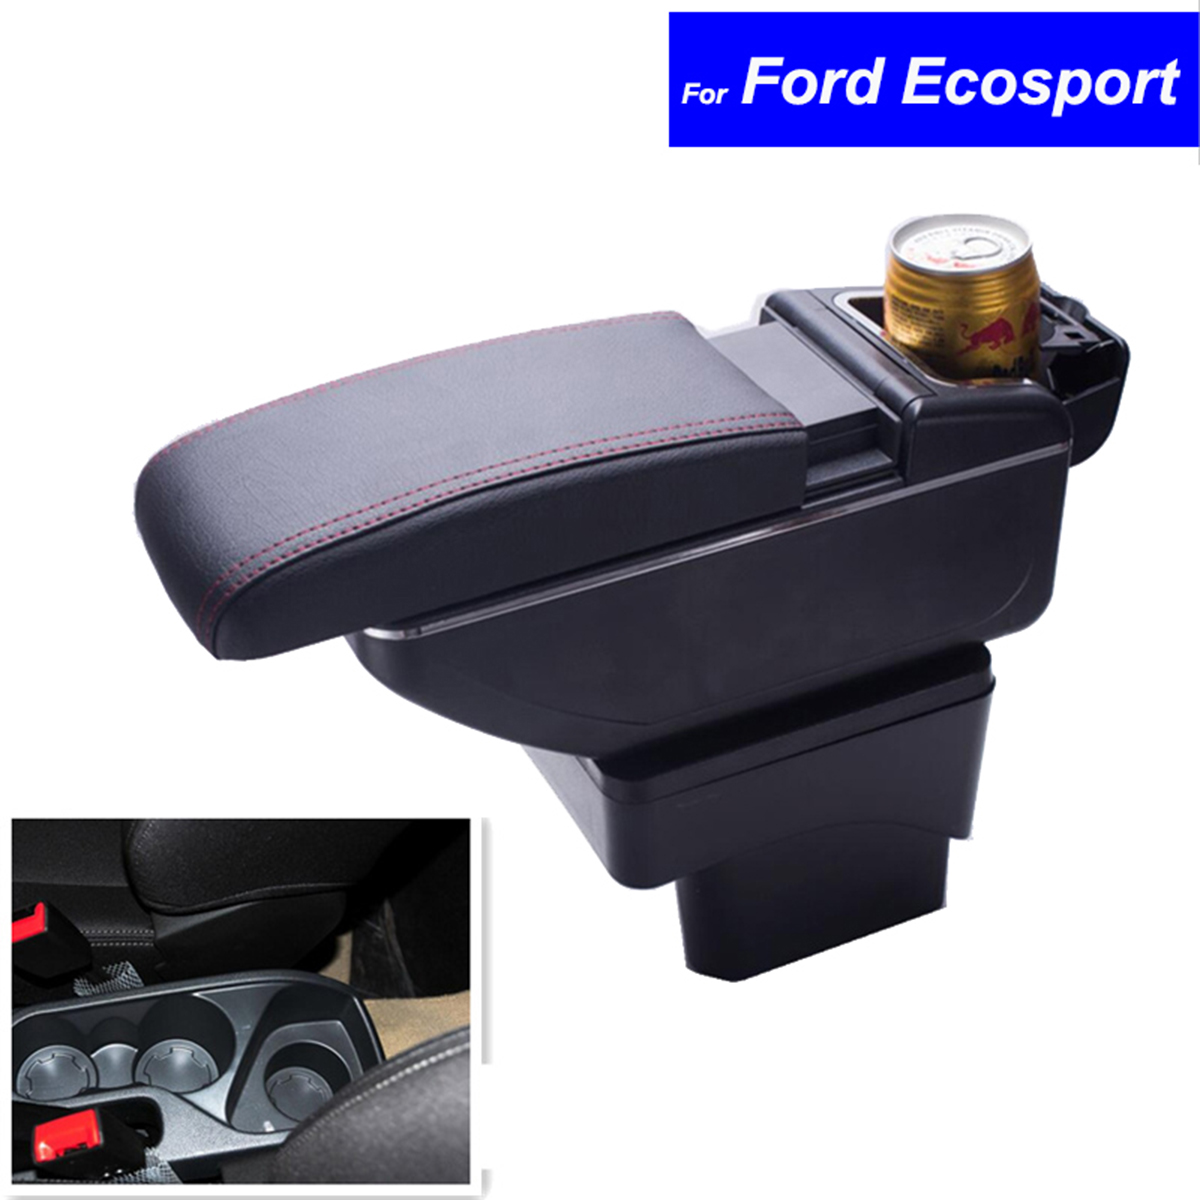 цена на Leather Car Center Console Armrests Storage Box for Ford Ecosport 2013 2014 2015 2016 Auto Parts Free Shipping